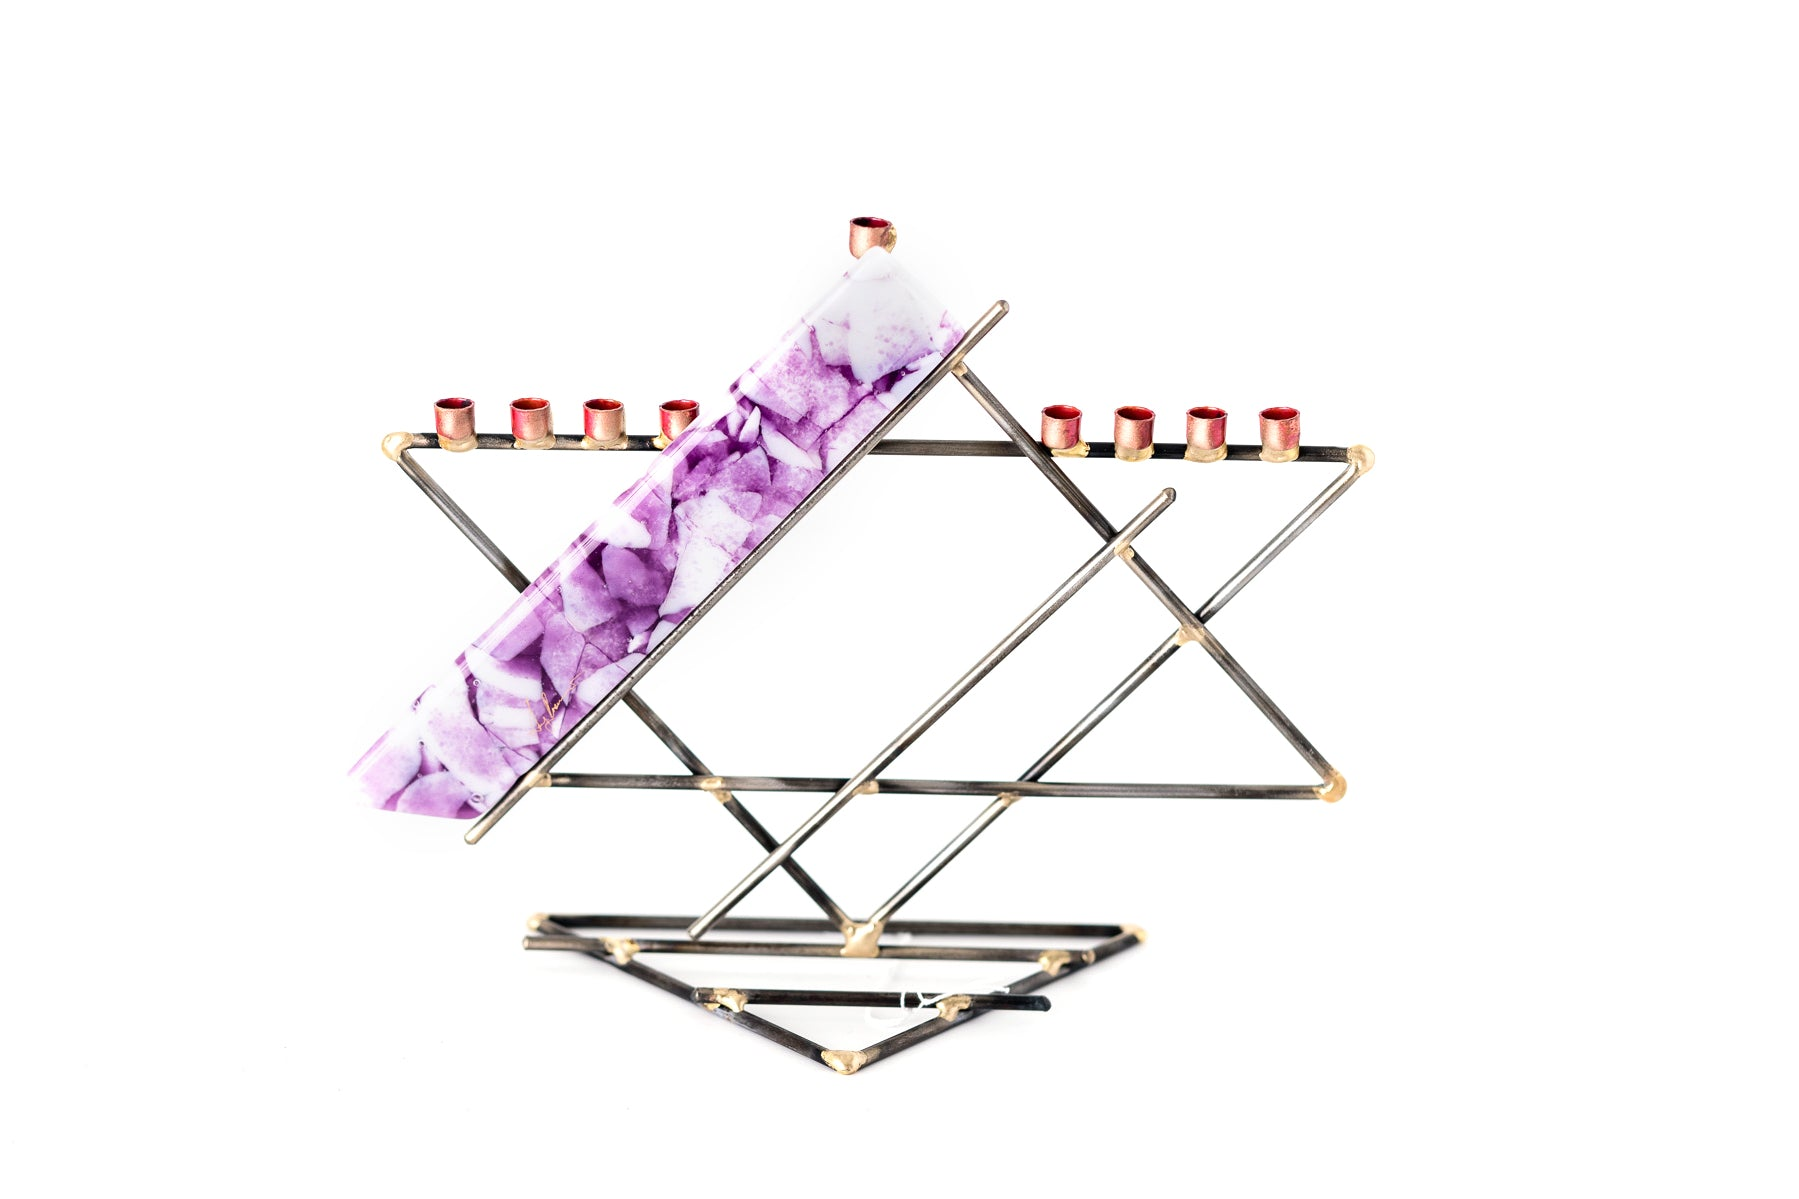 Gary Rosenthal Presidential Menorah for Nonprofit Pancreatic Cancer Support